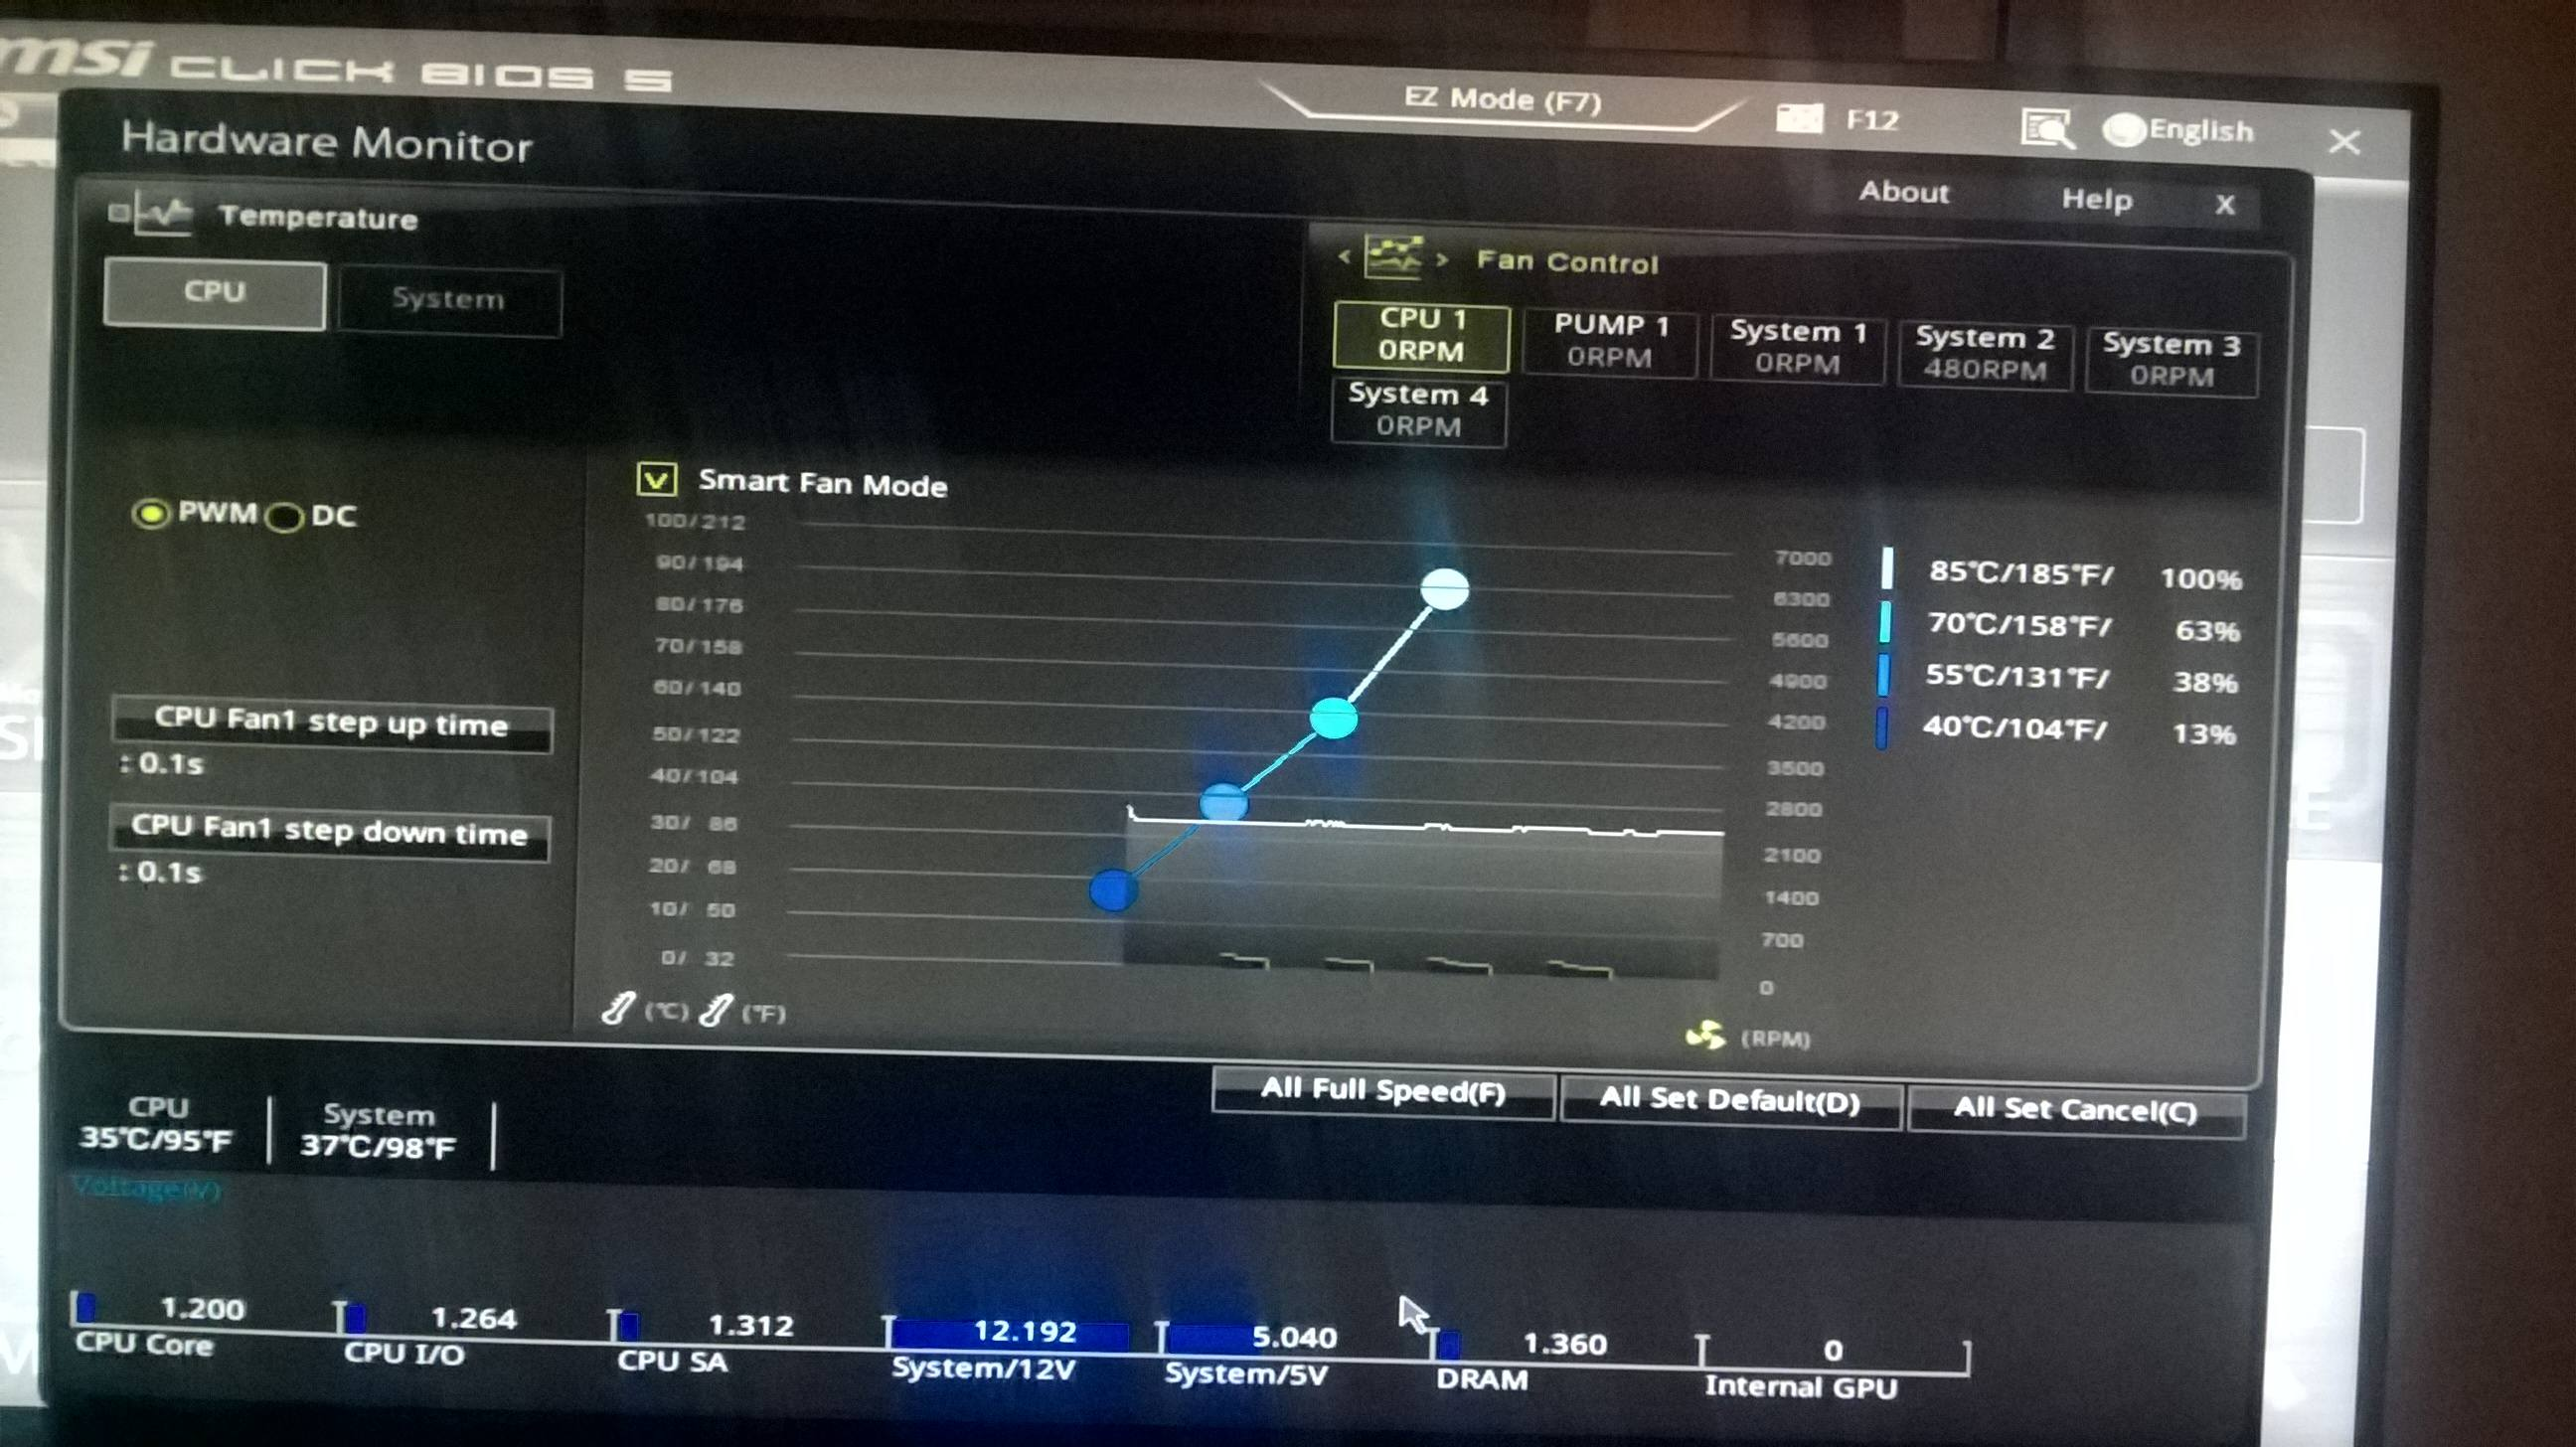 I7 8700k idle temp  - CPUs, Motherboards, and Memory - Linus